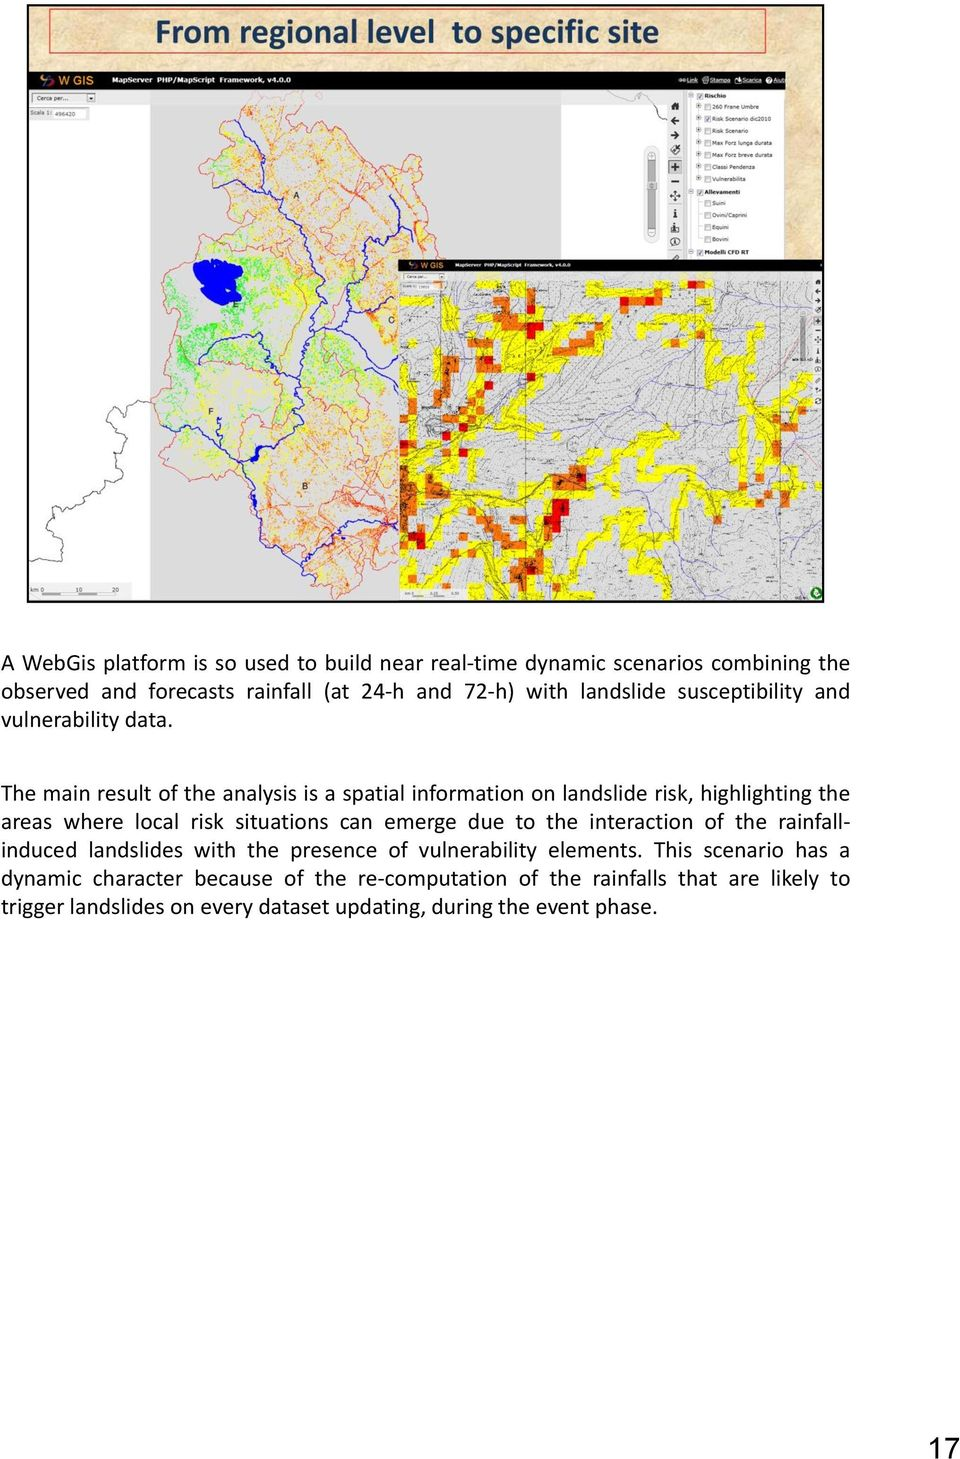 The main result of the analysis is a spatial information on landslide risk, highlighting the areas where local risk situations can emerge due to the